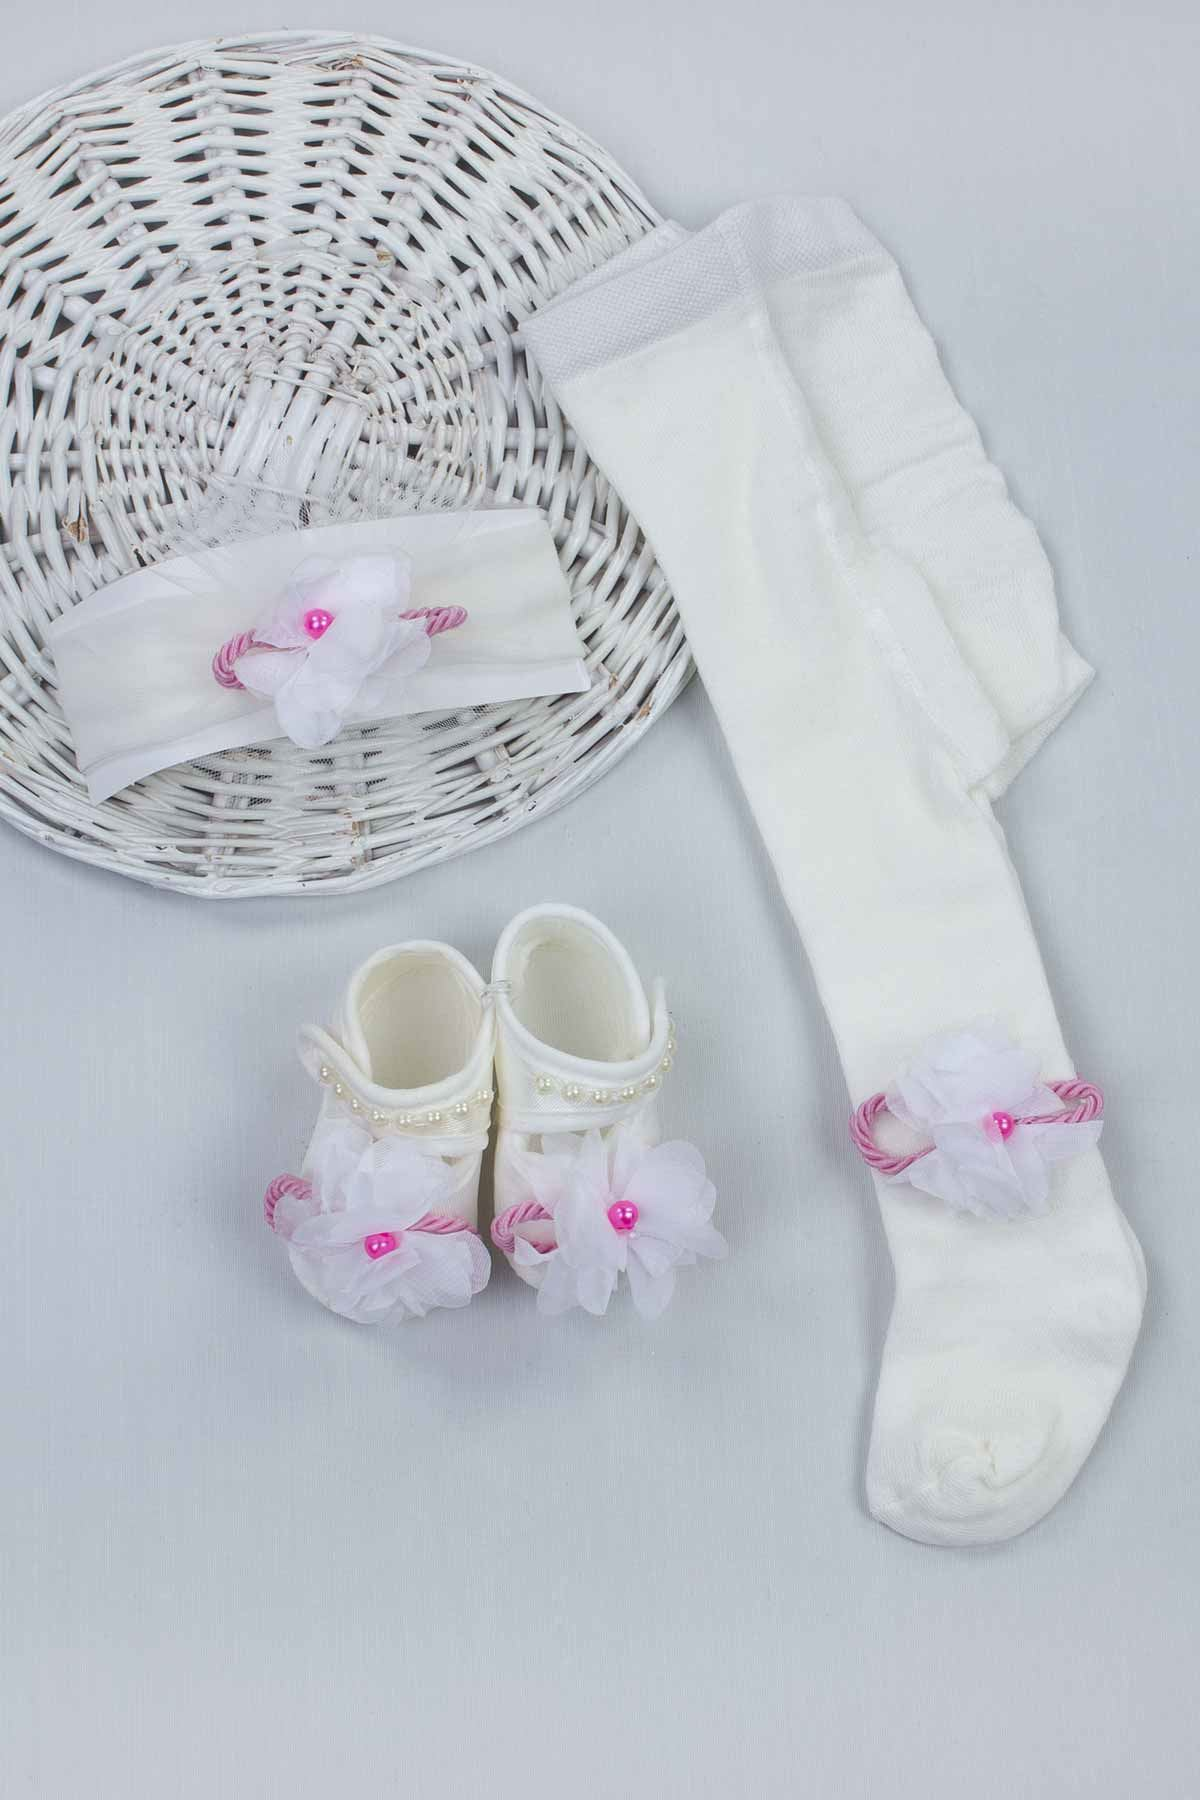 Pink Girl Babies Newborn Gift Suit Set Girls Babies Tights Stockings Hair Bandana Shoes Baby Fashion Style 2021 Mom Gift package